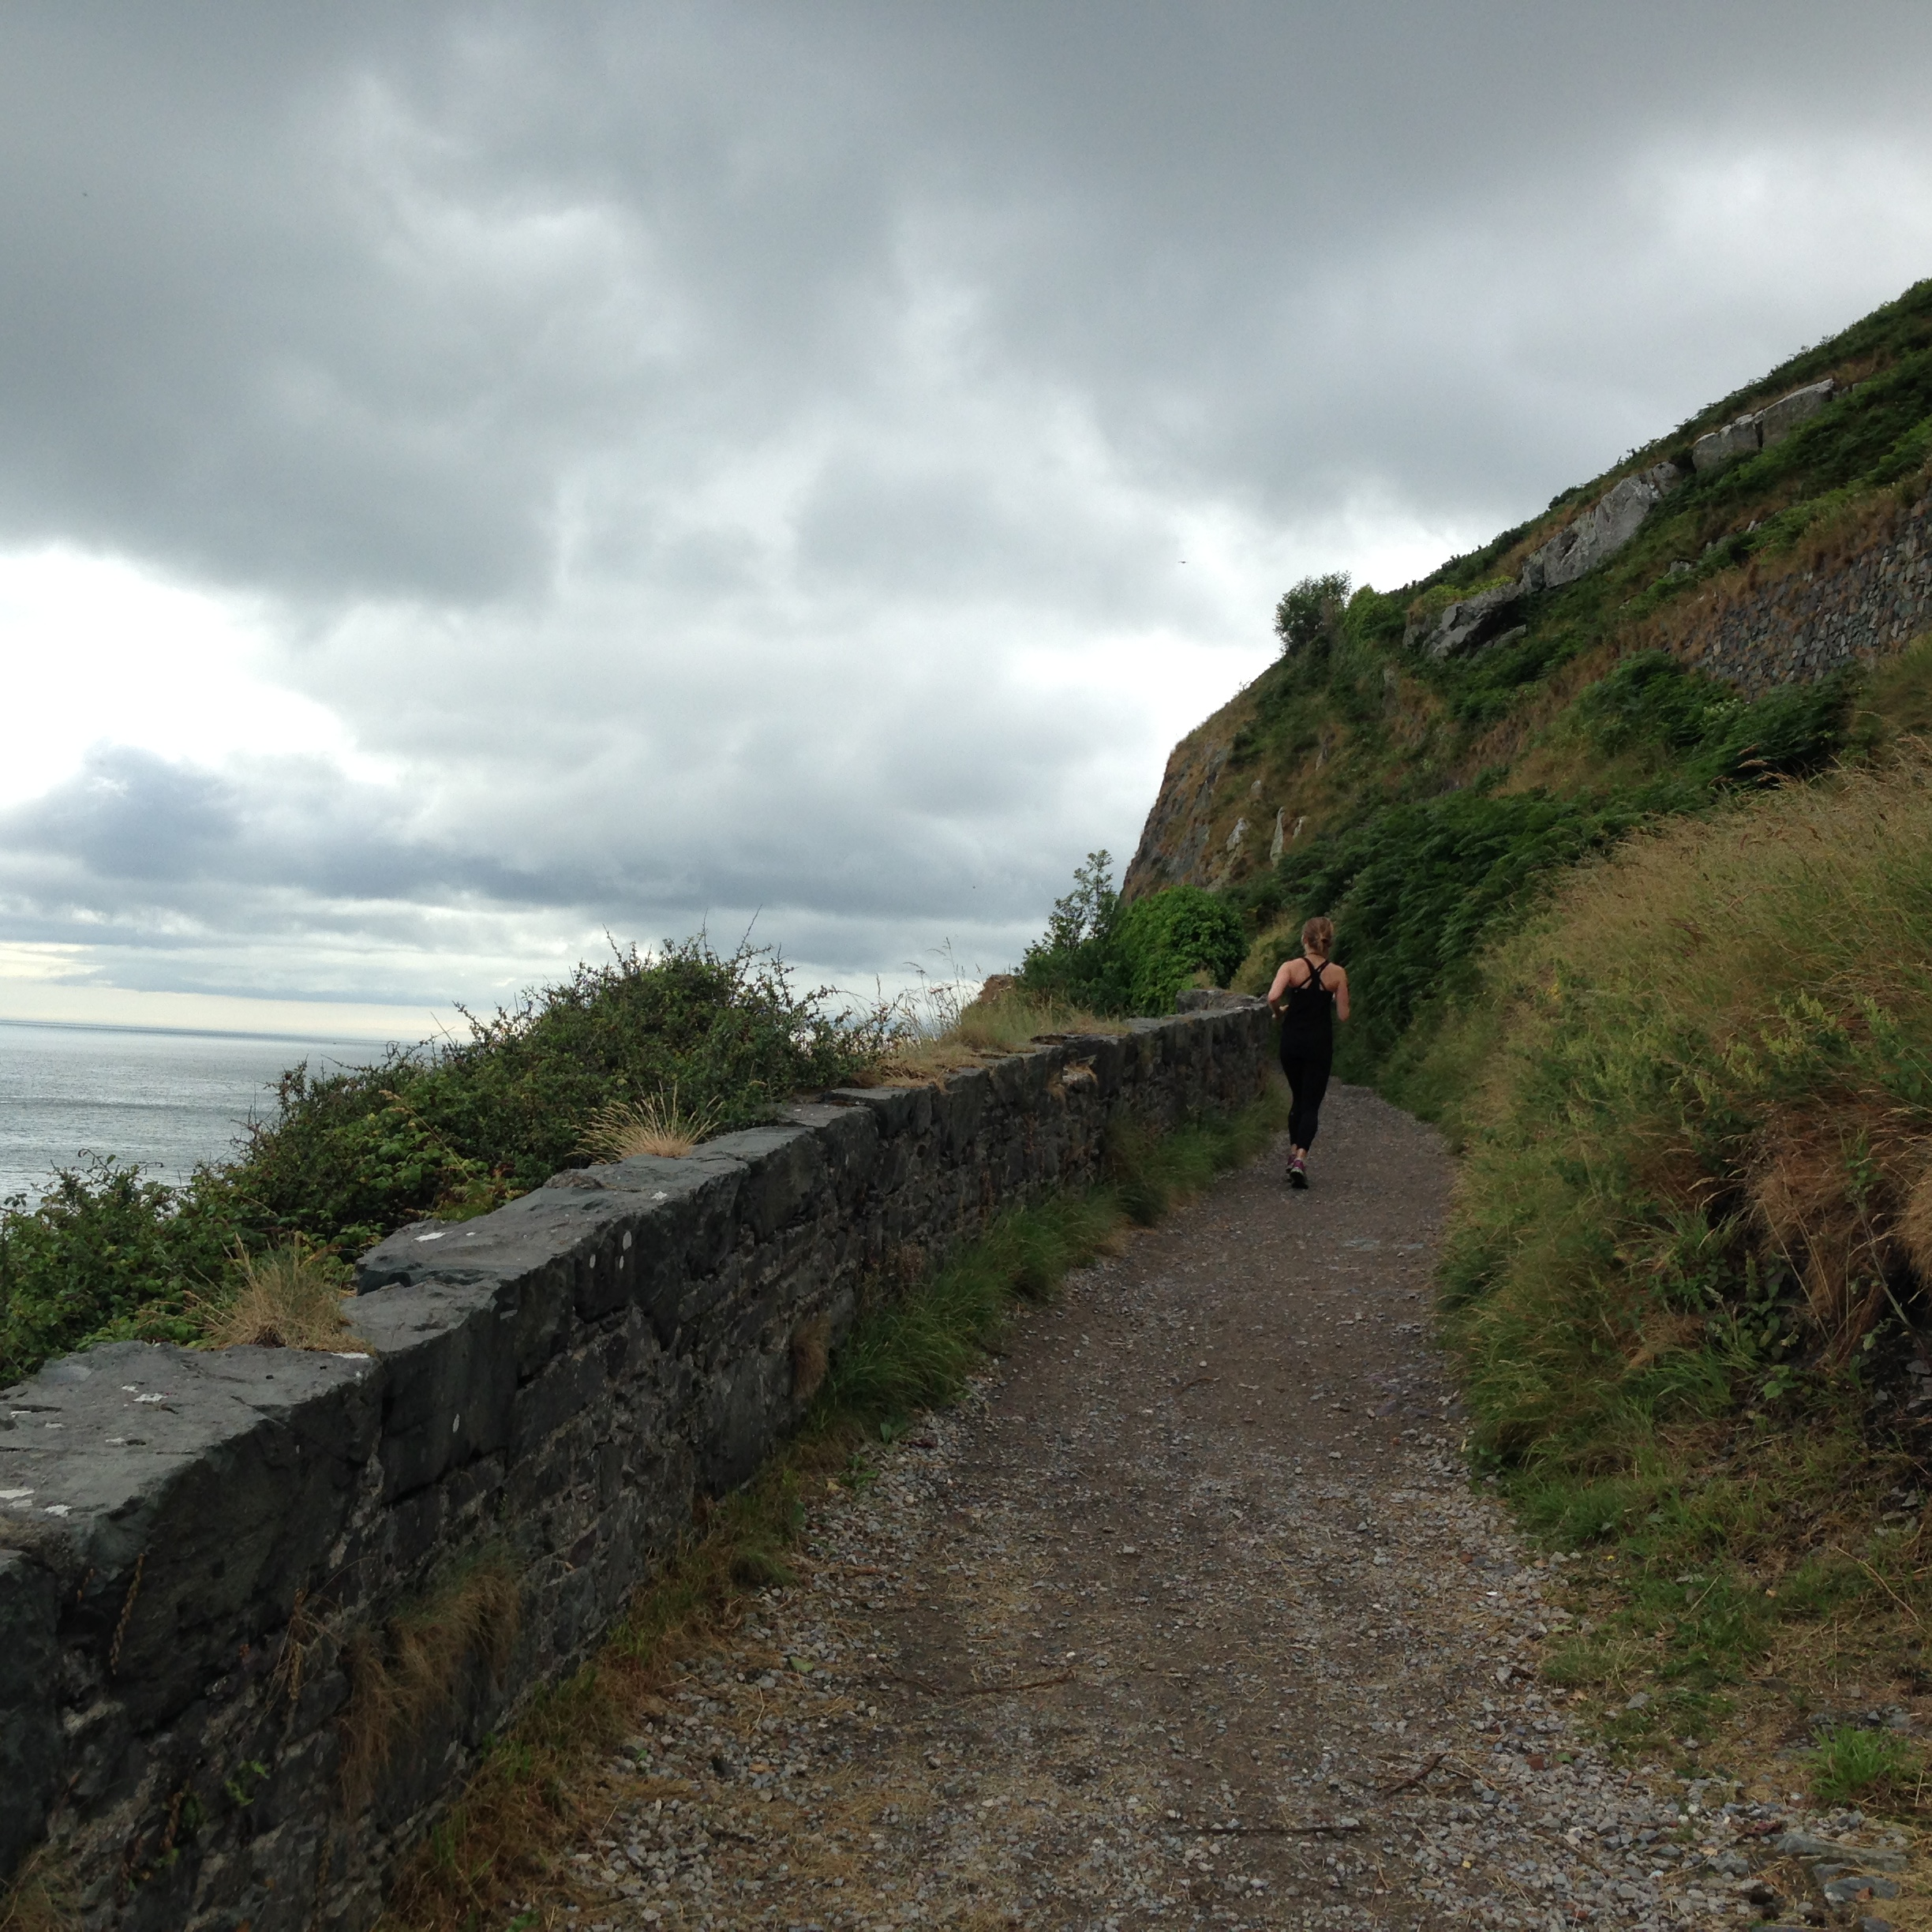 running the clif walk from greystones to bray and back again.